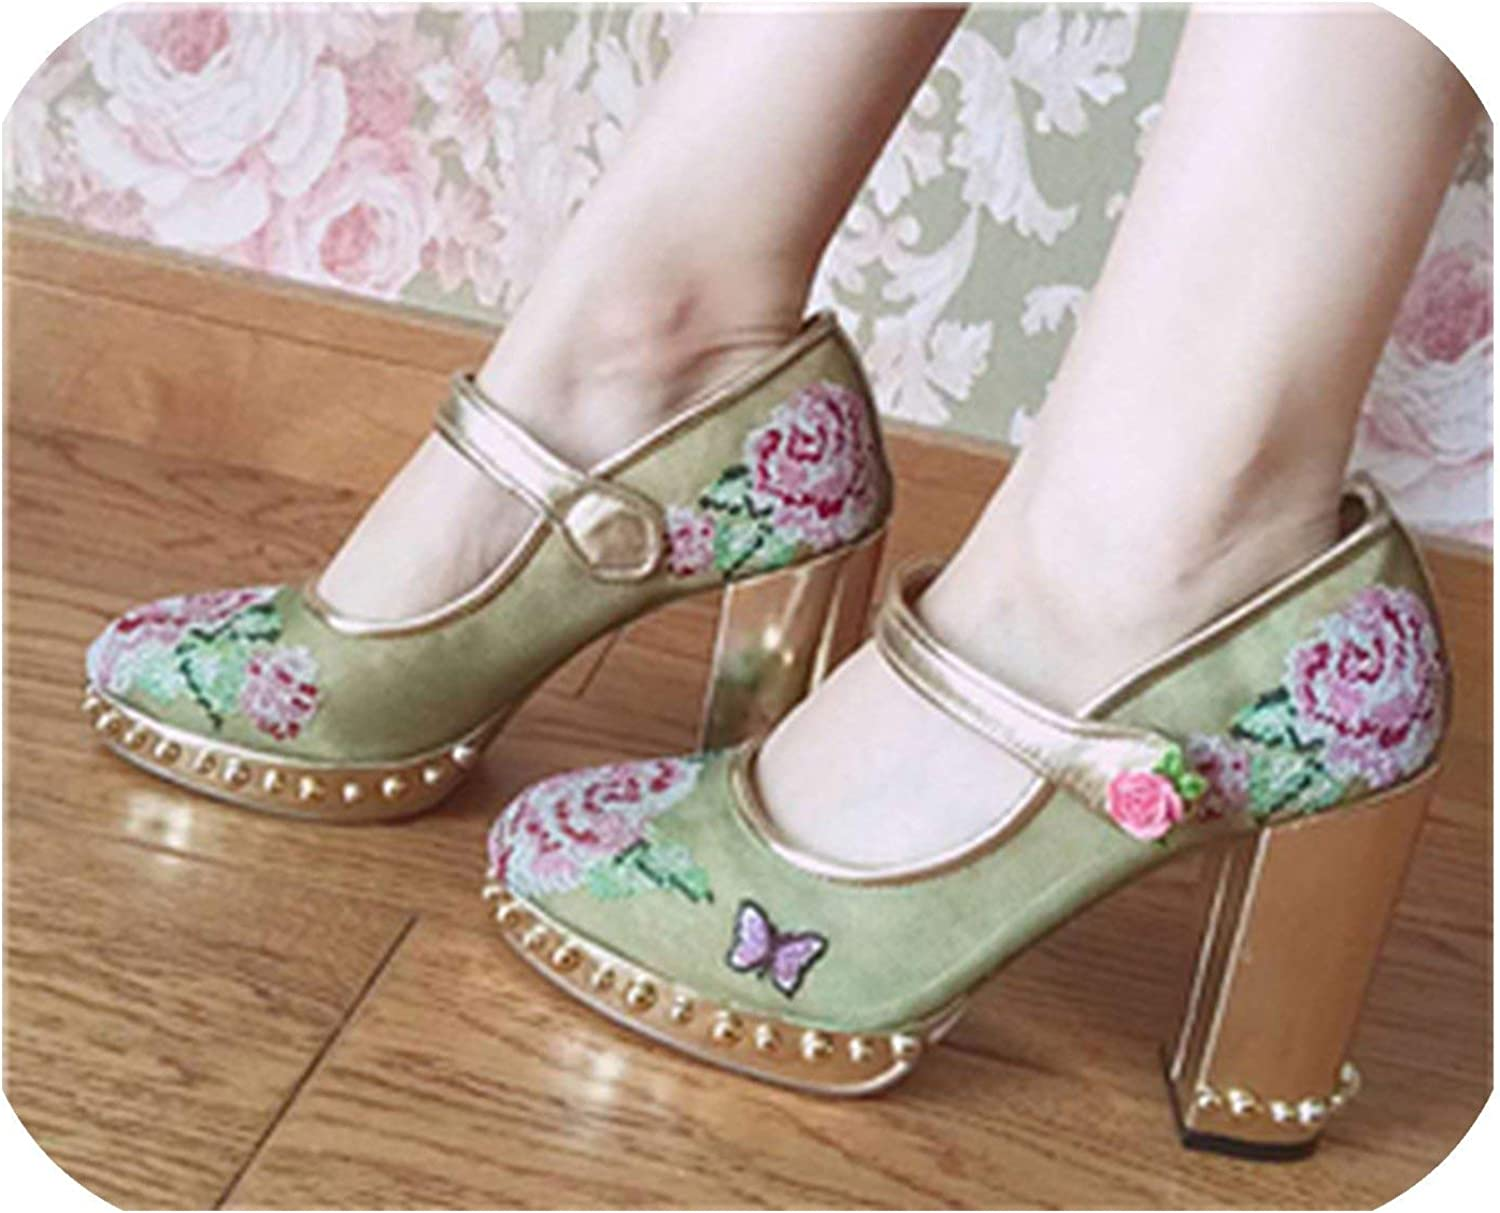 The Hot Rock-sandals Luxury Retro Mesh Air Women Pumps Sewing pink Flower Knitted Chunky High Heels Platform Strappy Wedding shoes Woman